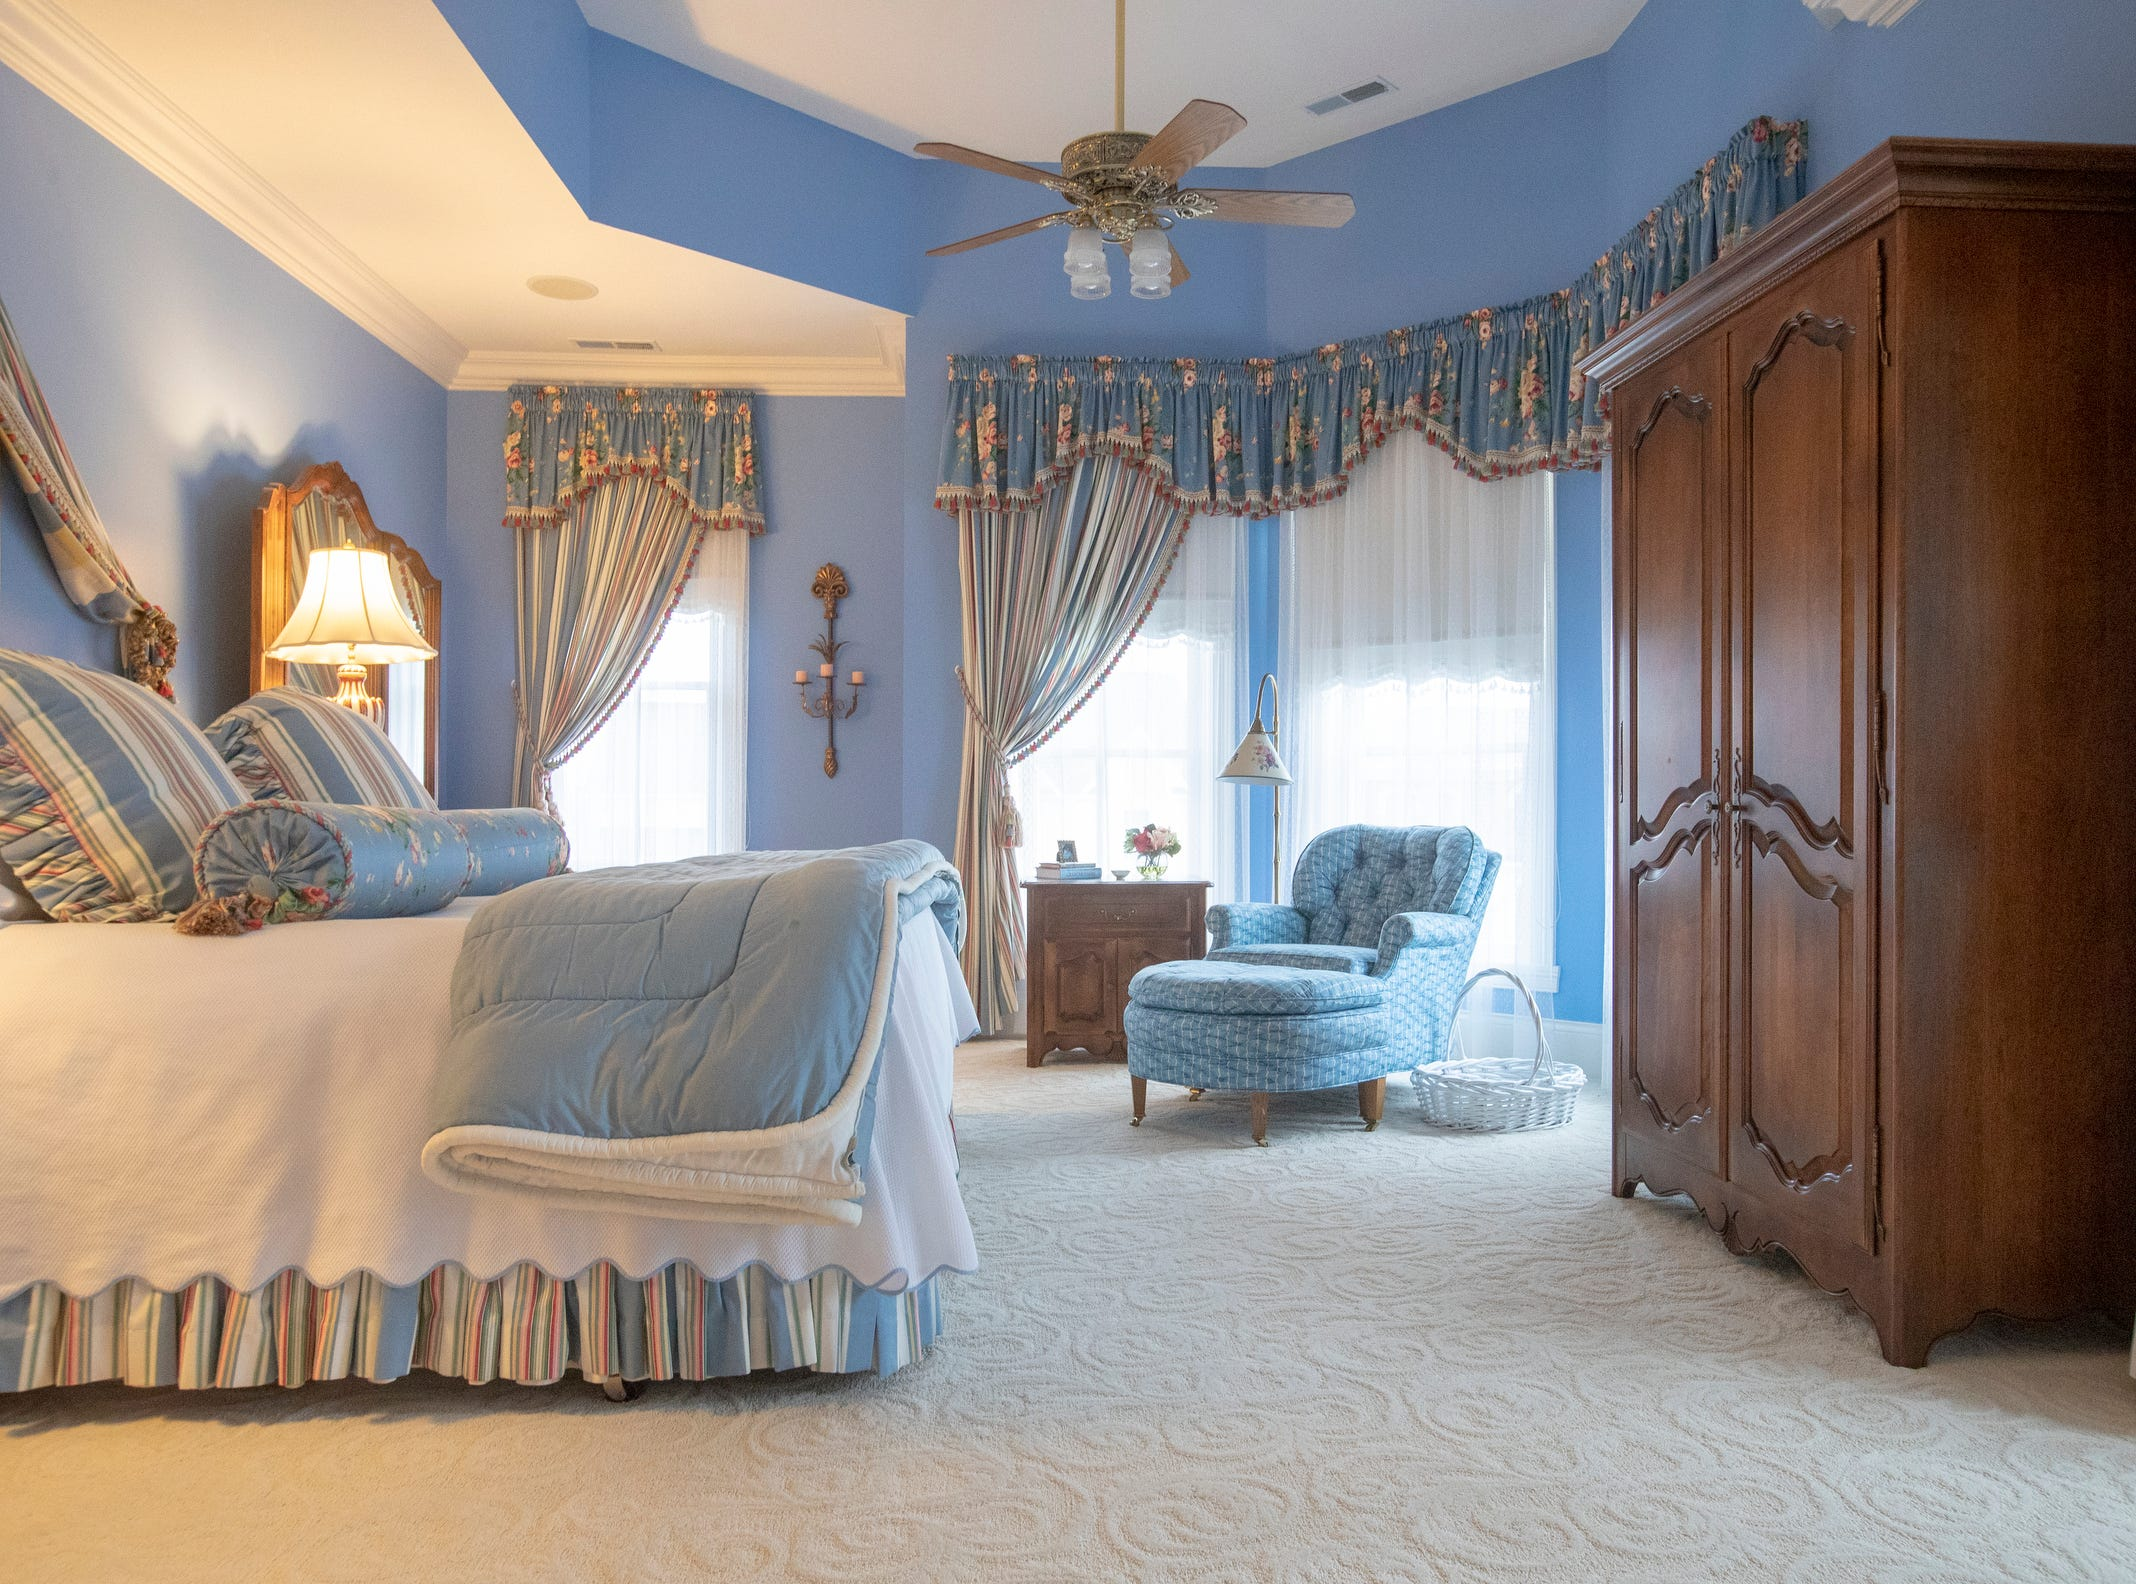 The master bedroom in a thirteen-year-old Victorian home in the Village of West Clay, Carmel, March 20, 2019. The house includes 16 rooms with five bedrooms, 8,348 square feet, and is listed at $1.275 million.